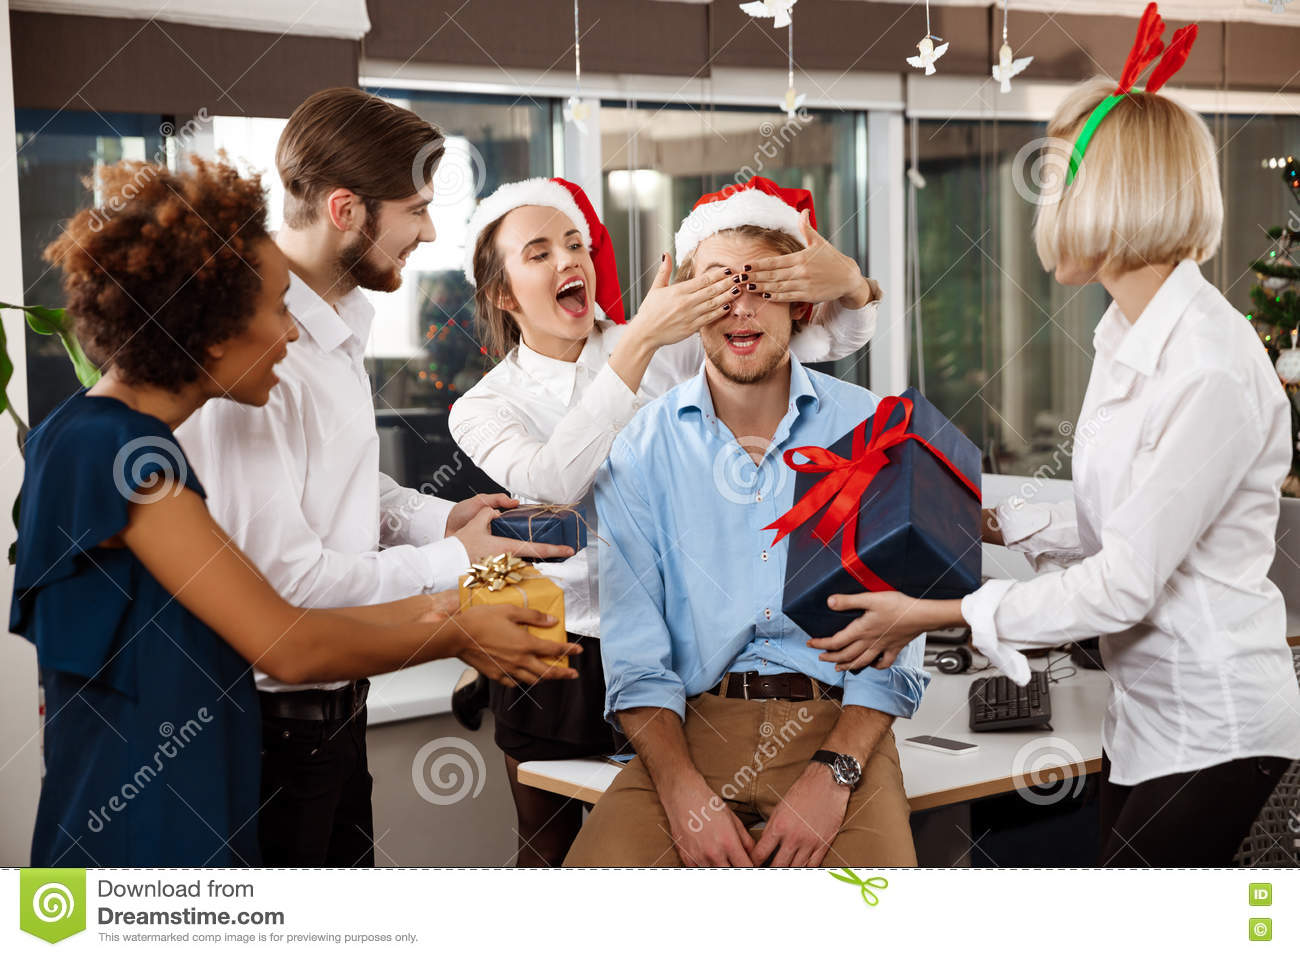 Funny awards office christmas party-8717